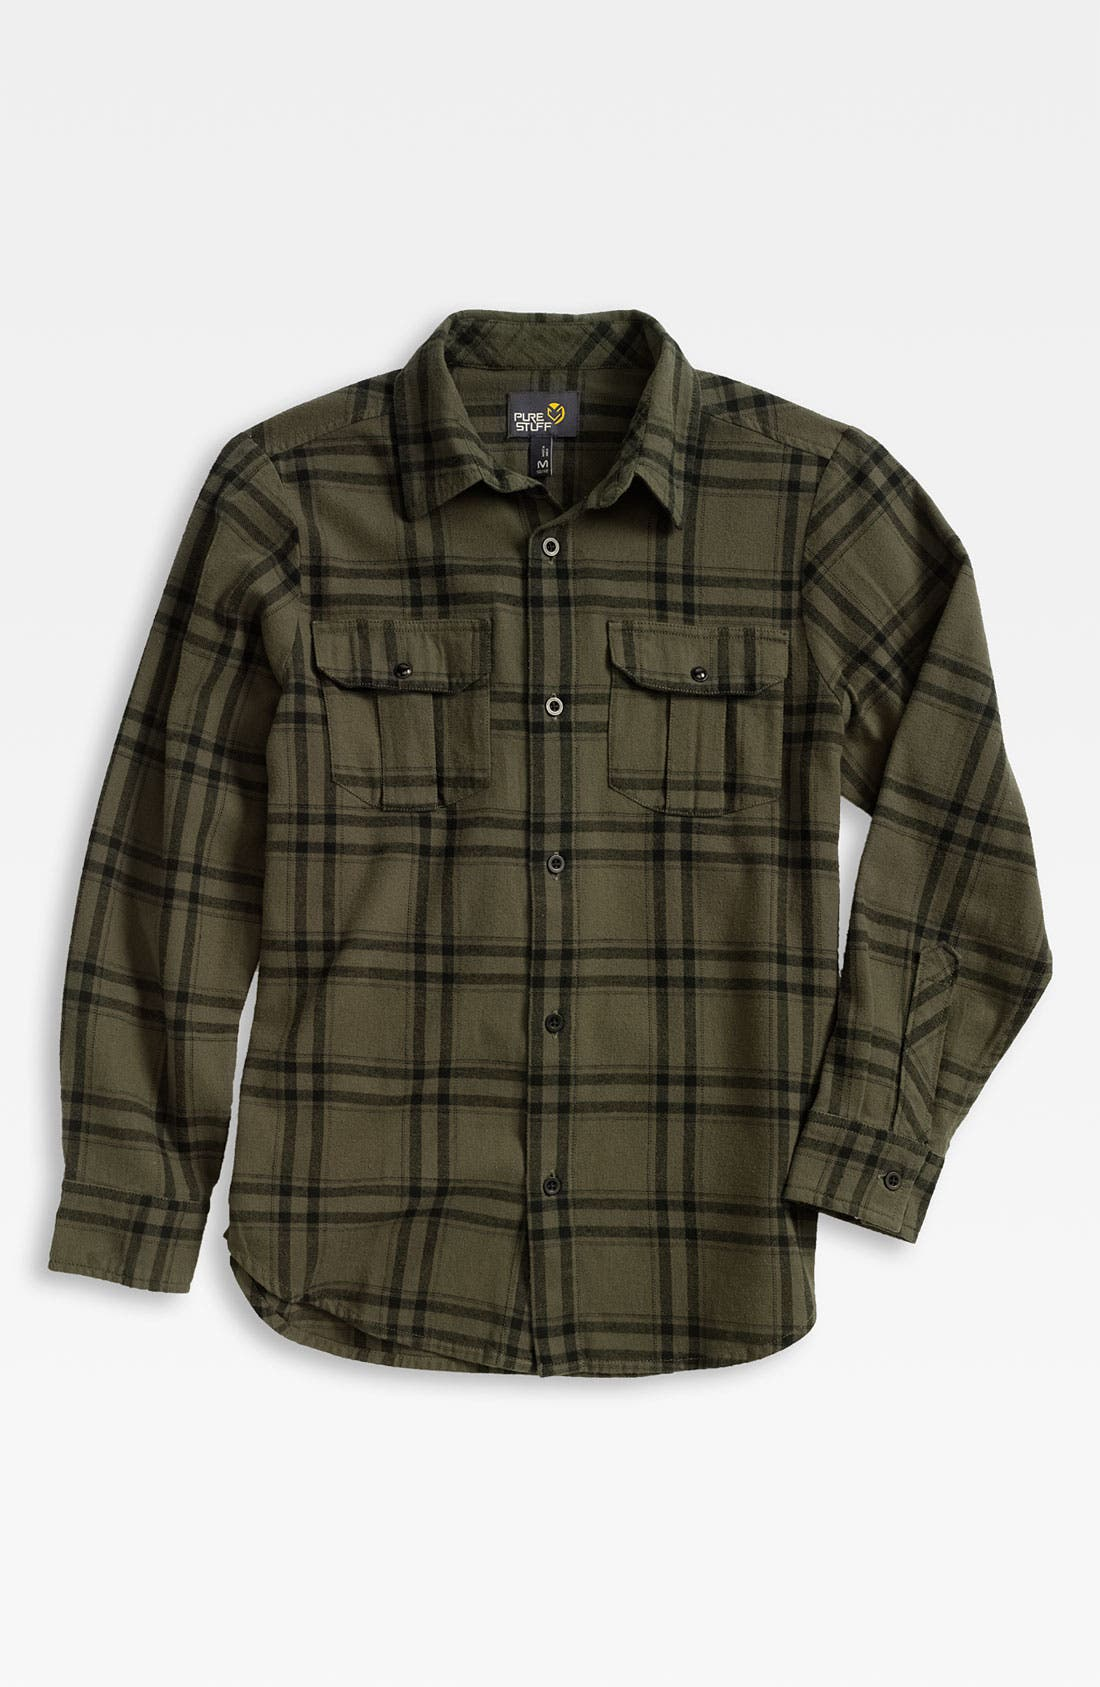 Alternate Image 1 Selected - Pure Stuff 'Blake' Flannel Shirt (Big Boys)